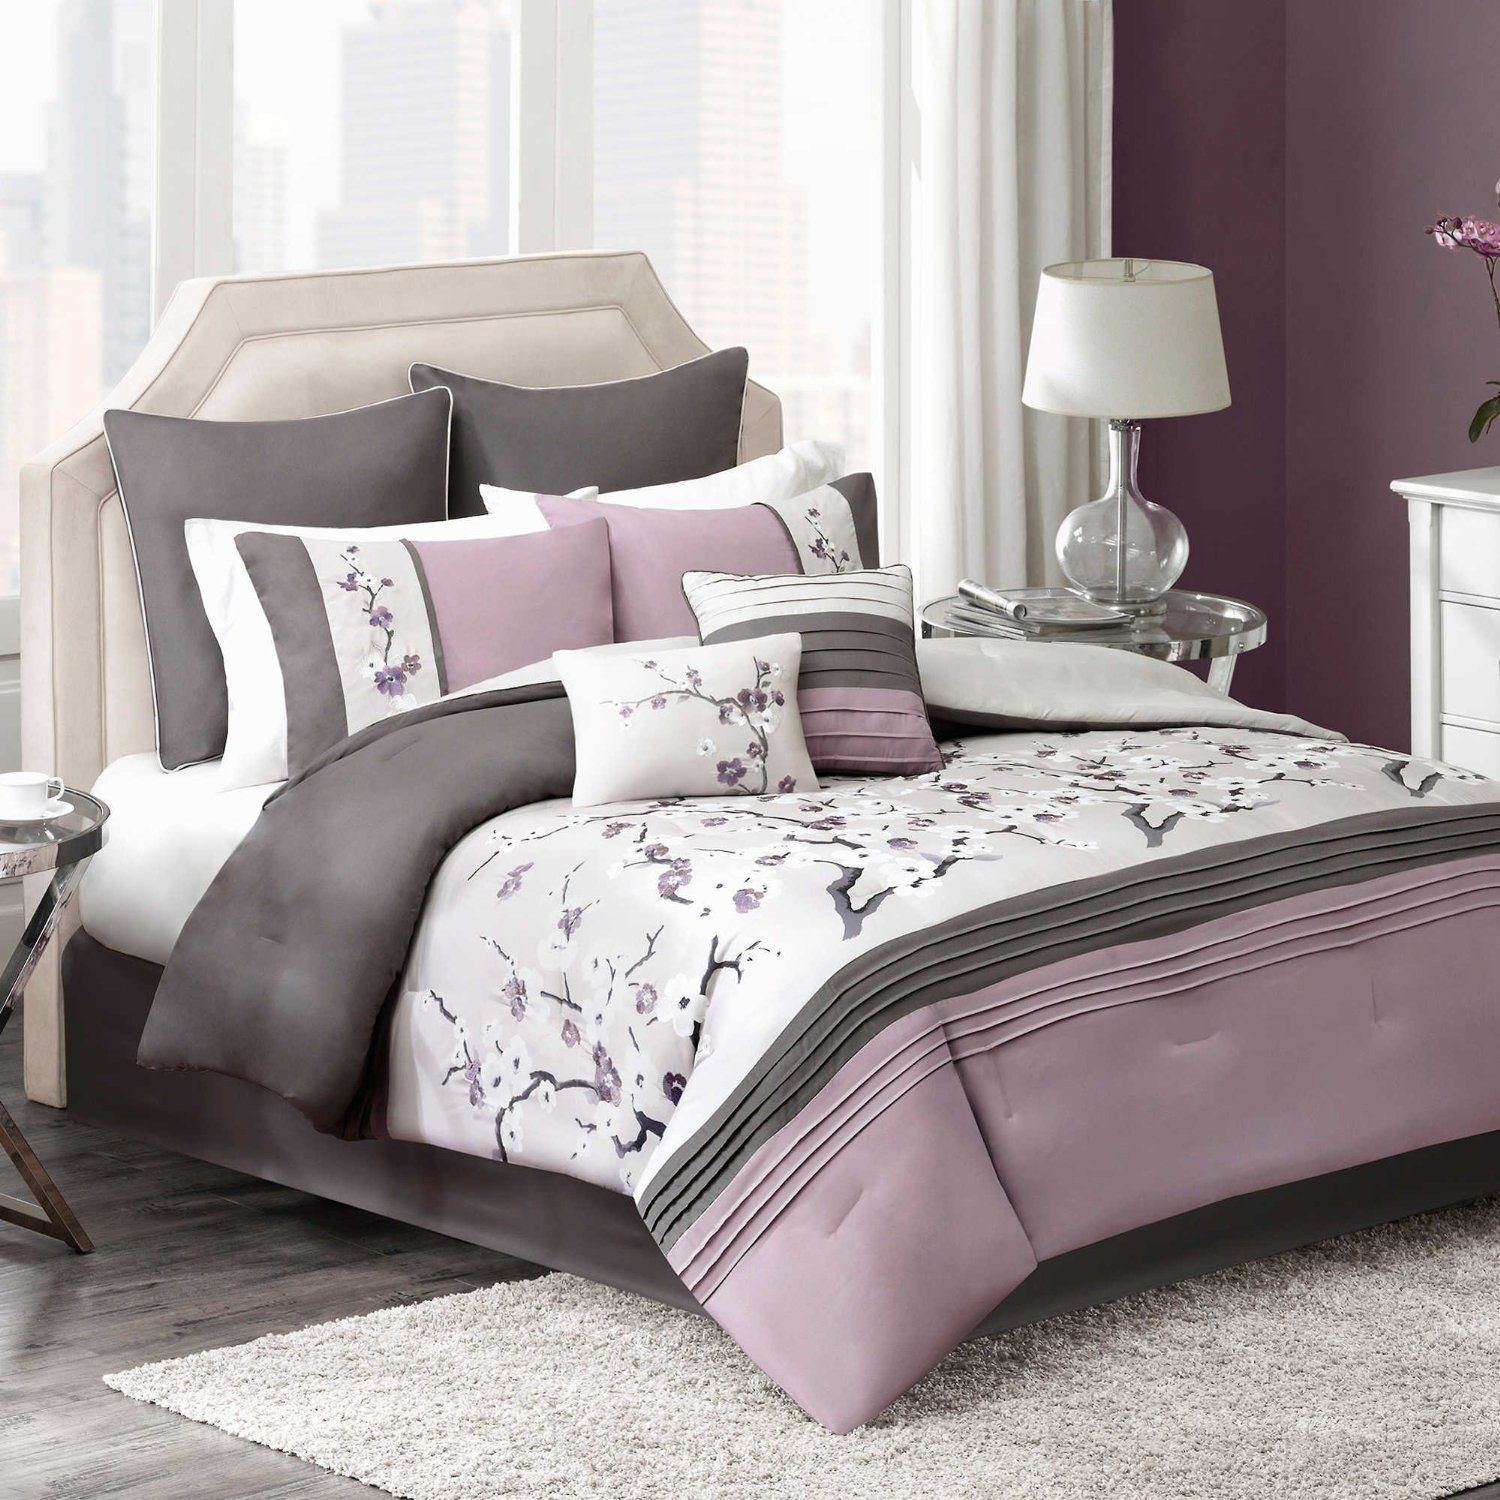 Plum Bedding Floral Embroidered Comforter Set for Teen Girls